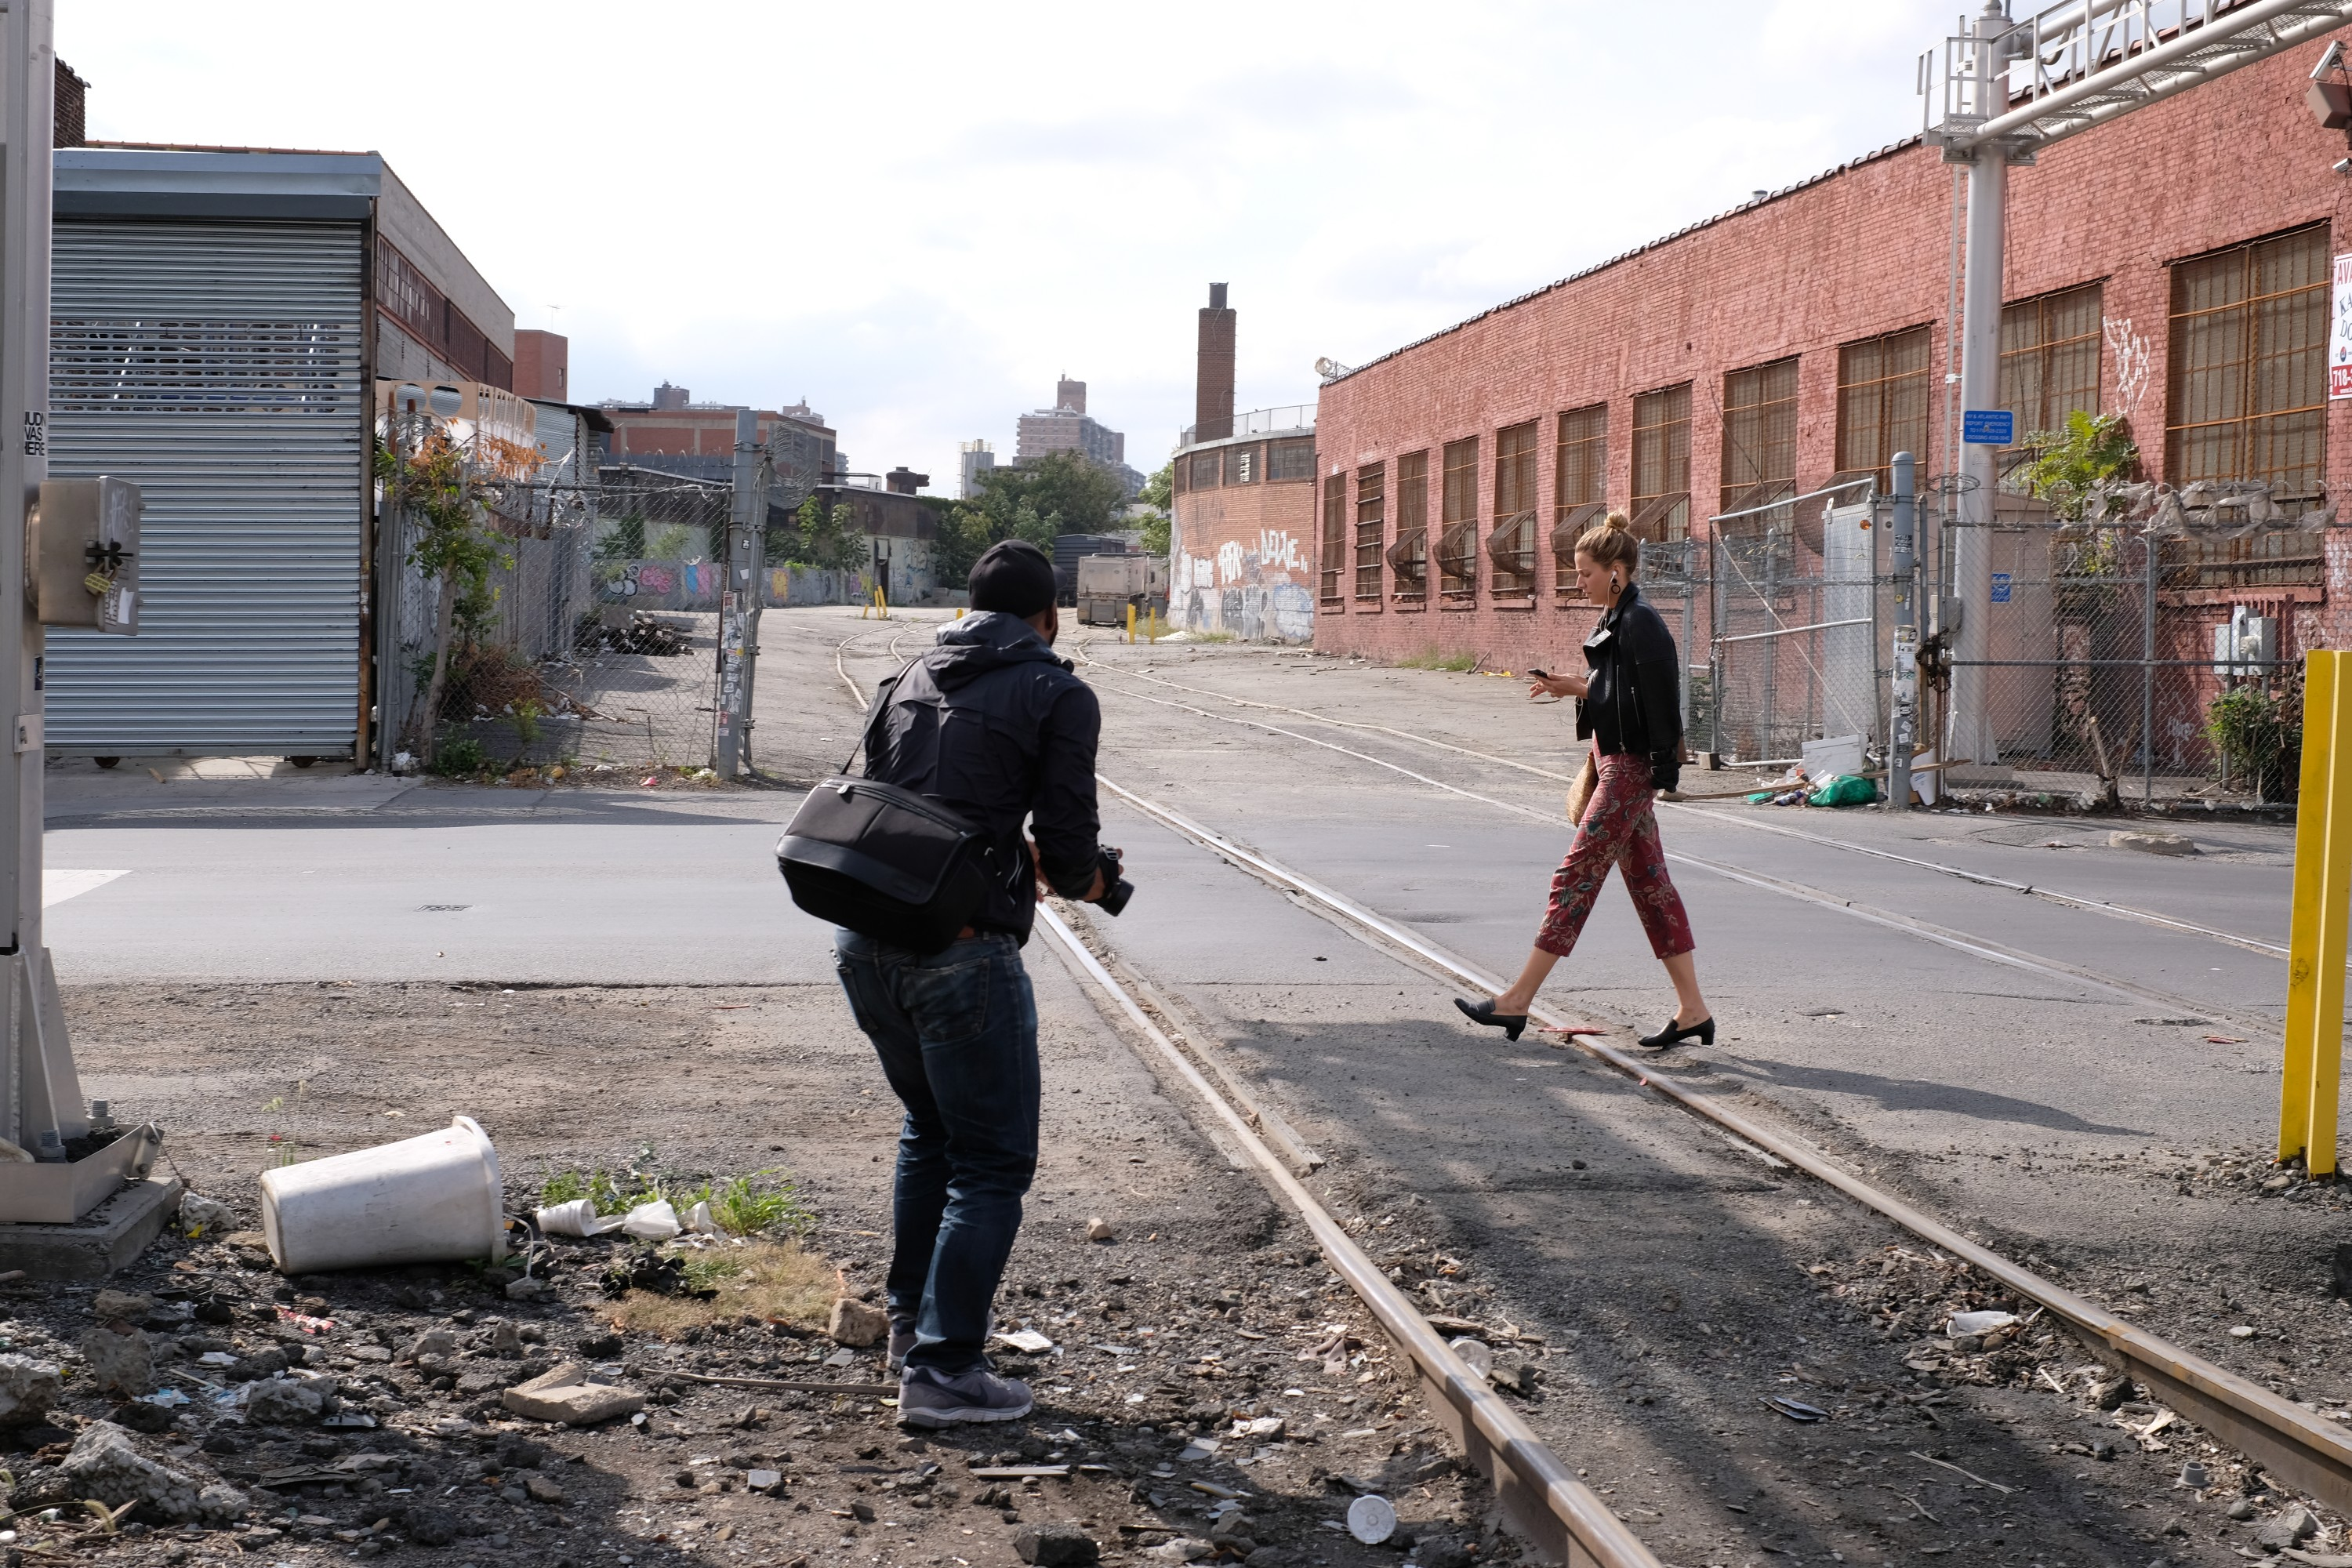 street photographer and woman walkng by train tracks